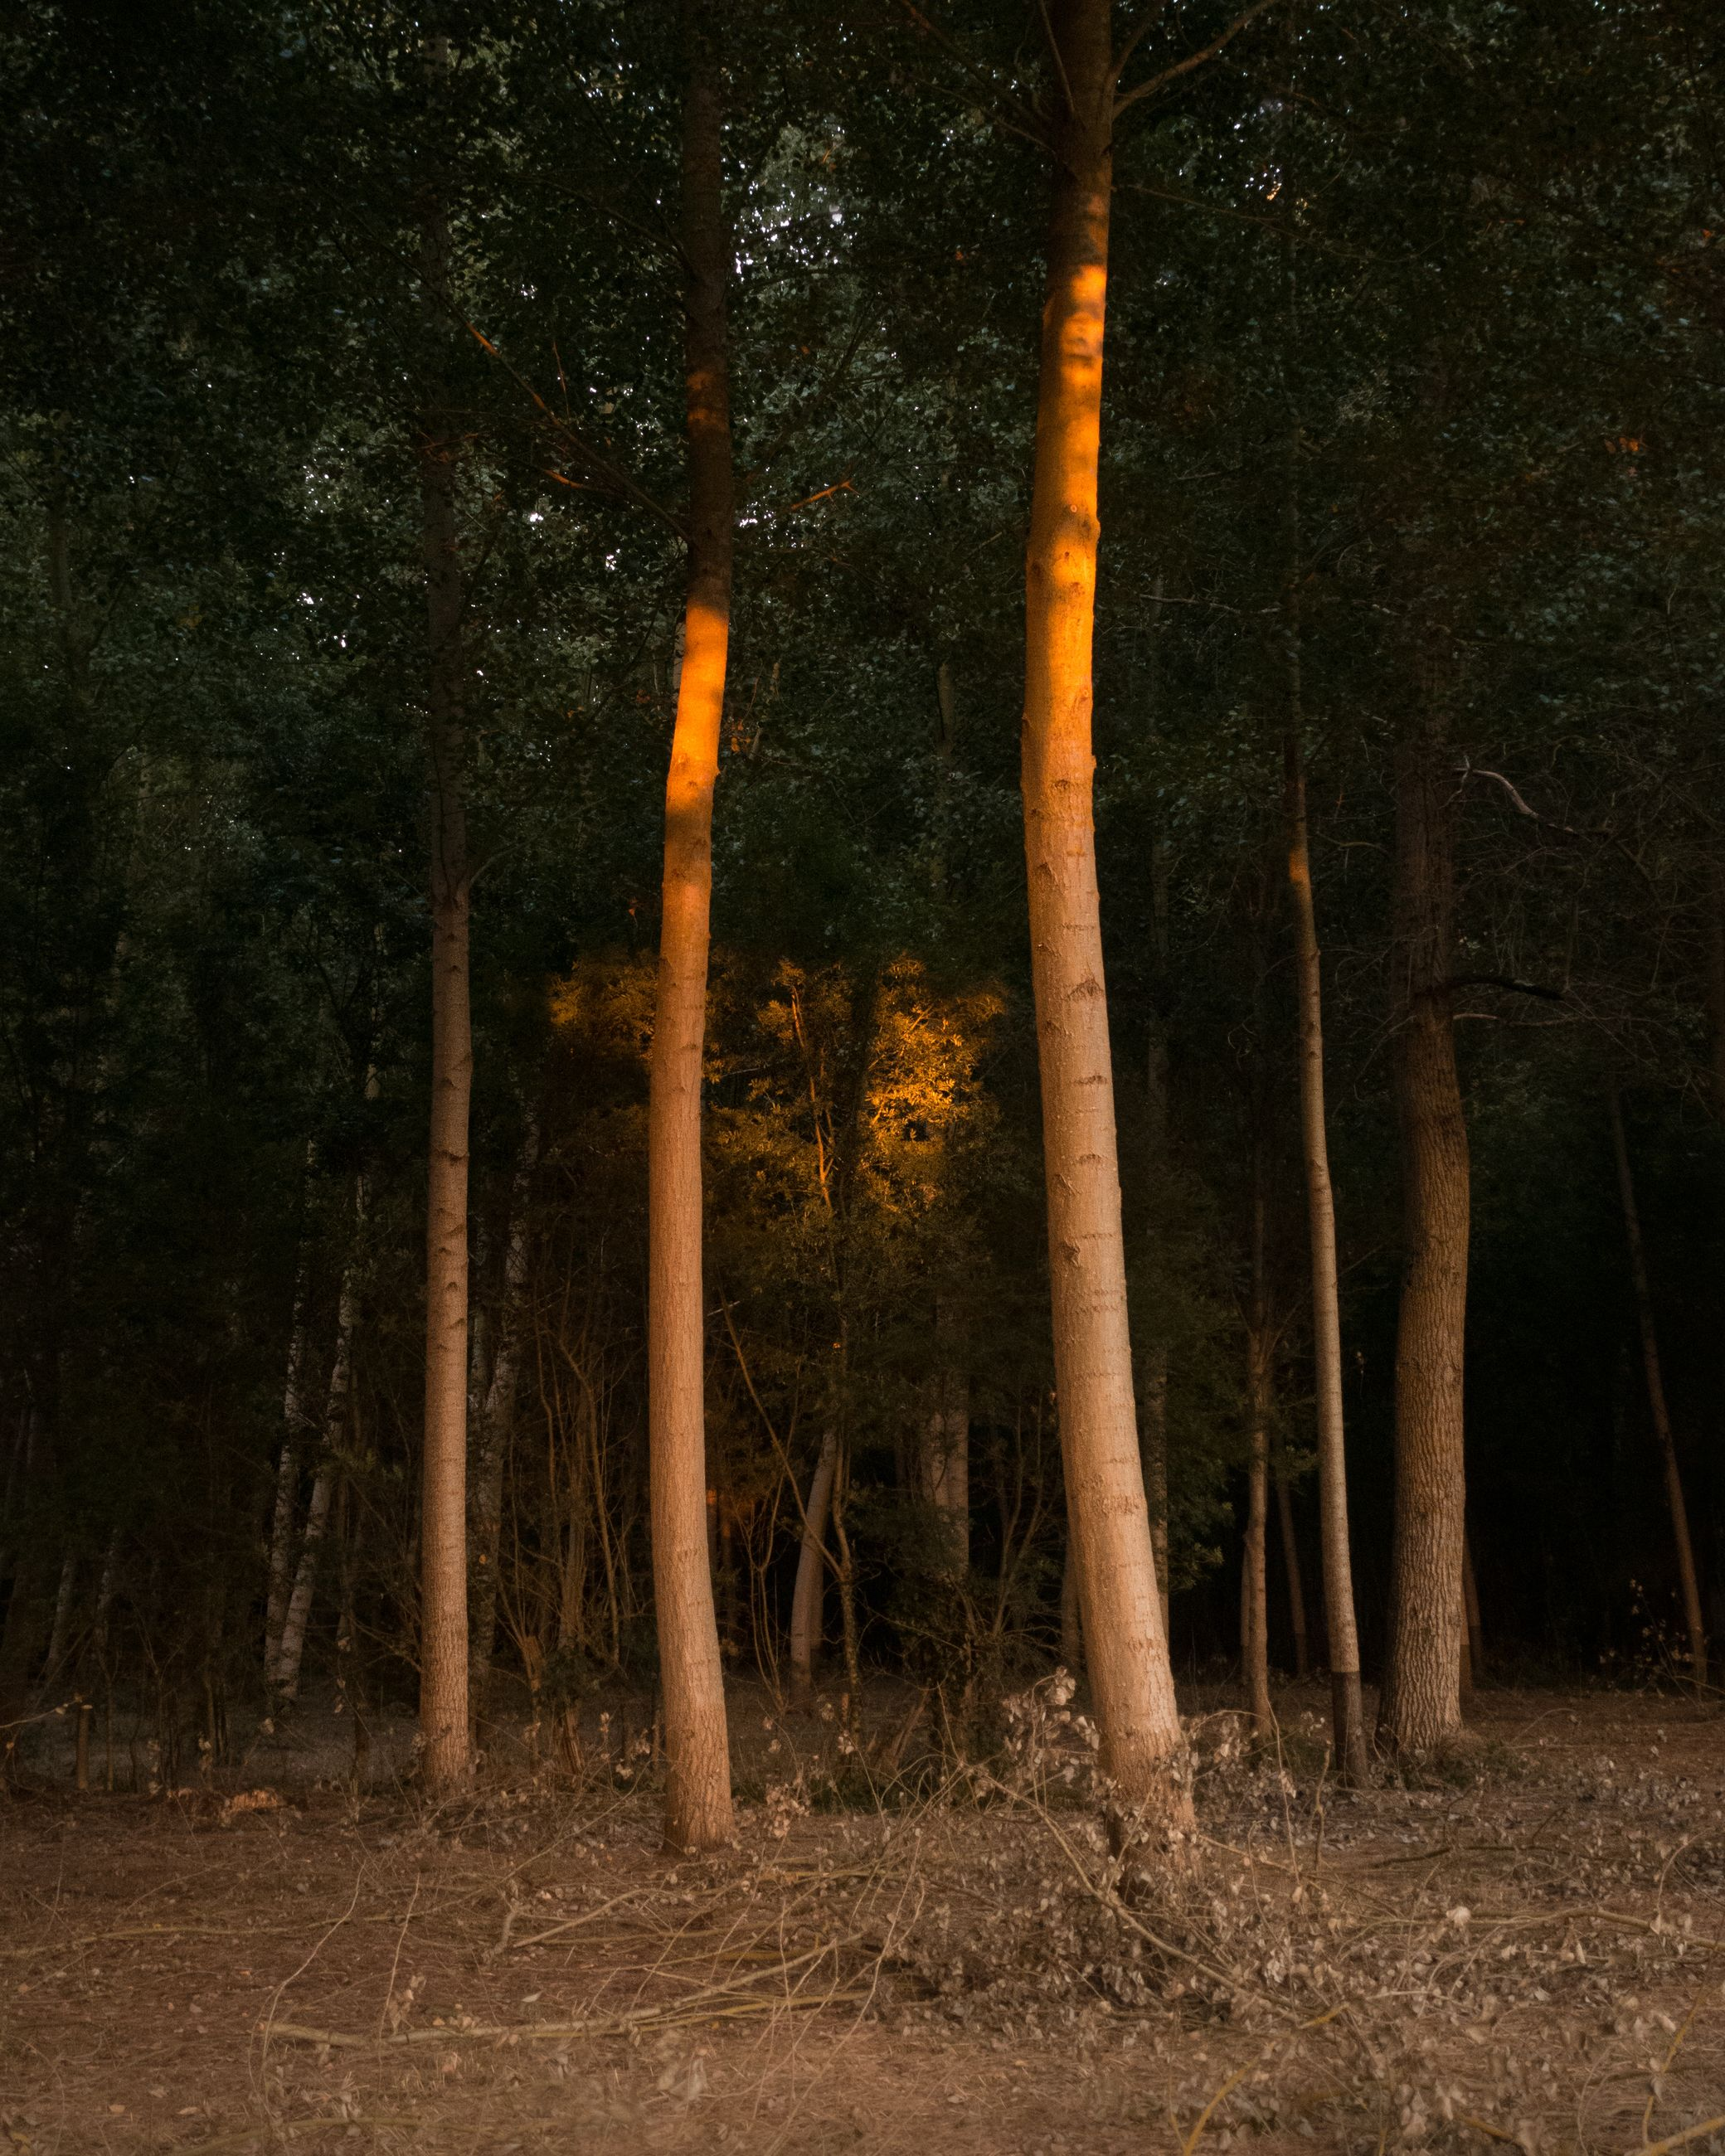 tree, plant, land, forest, trunk, tree trunk, nature, sunlight, natural environment, no people, tranquility, woodland, darkness, beauty in nature, growth, environment, leaf, non-urban scene, landscape, tranquil scene, outdoors, autumn, scenics - nature, light, wood, morning